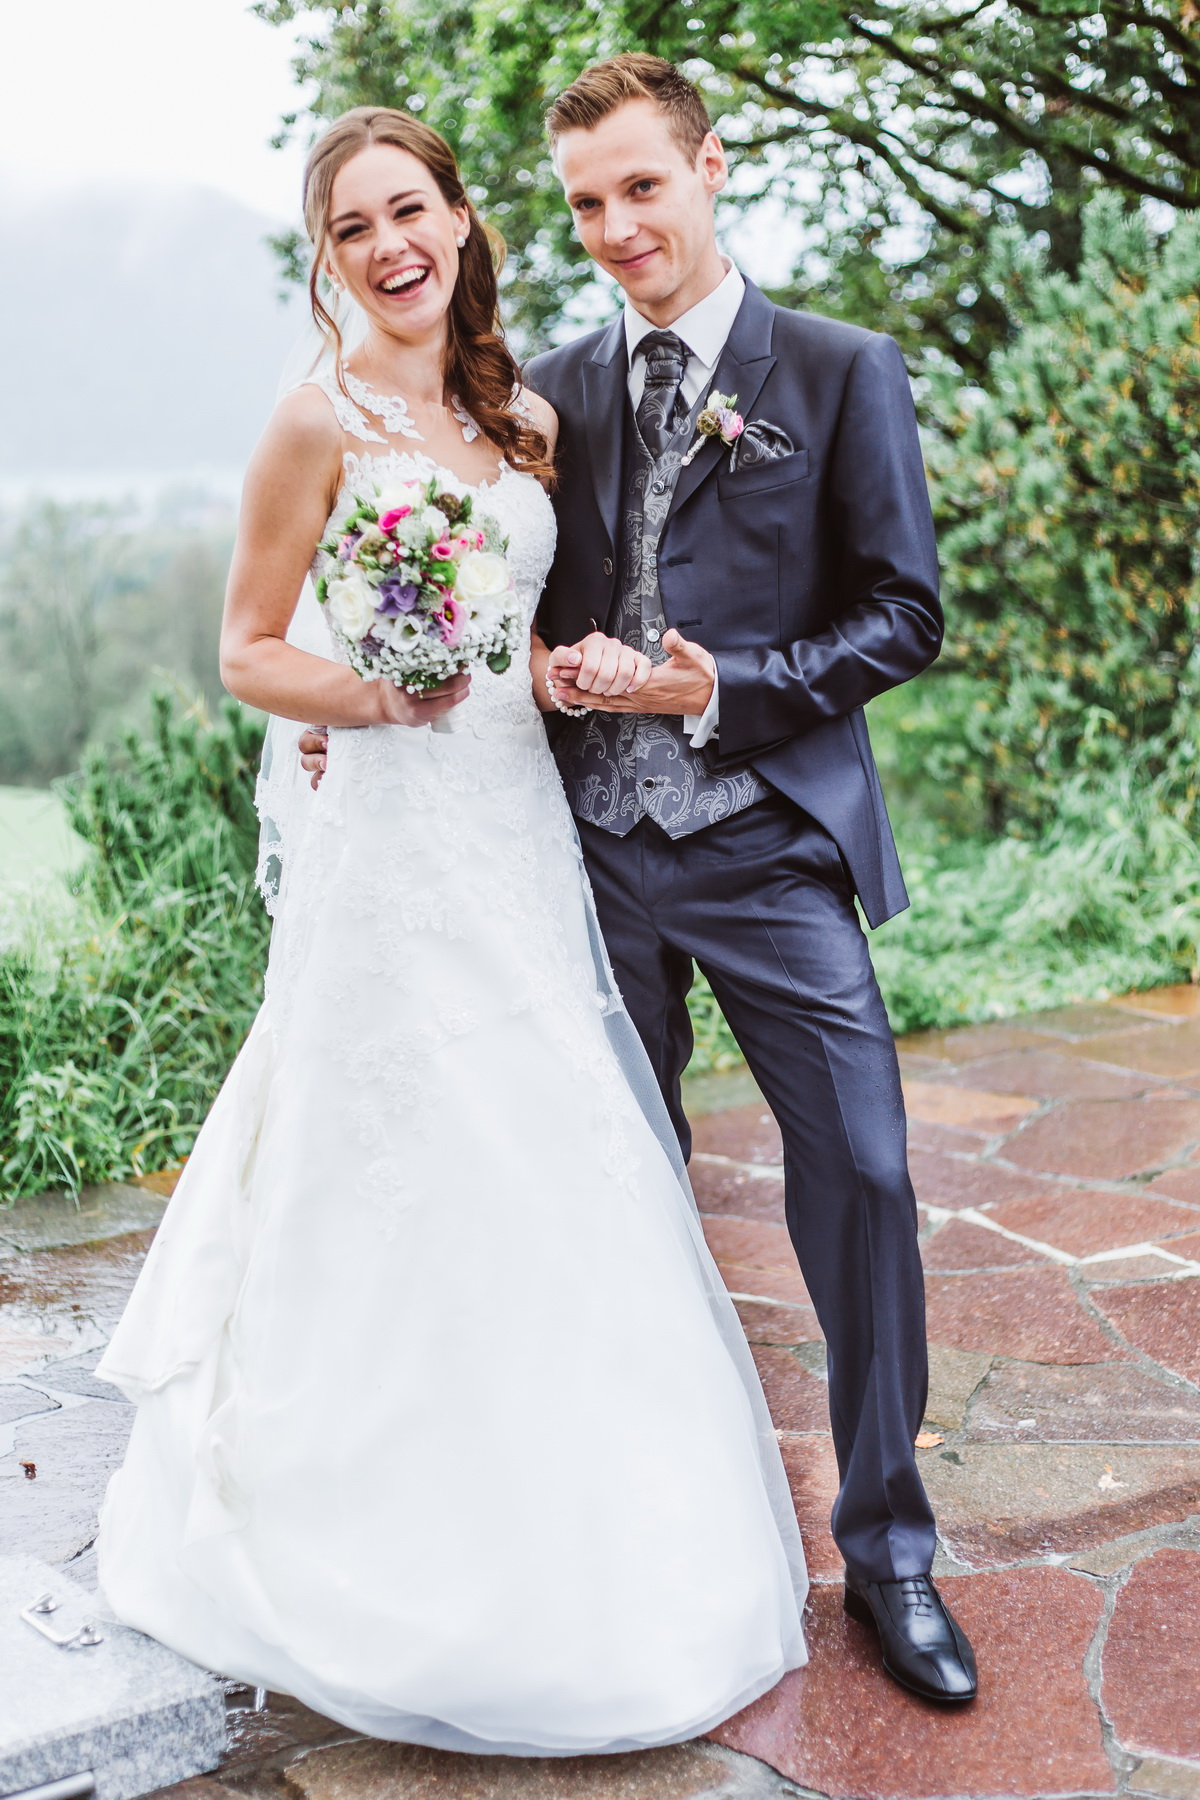 Claudia Sittig Photography - Couple - Hochzeit  Wedding - Selina und Richard 26